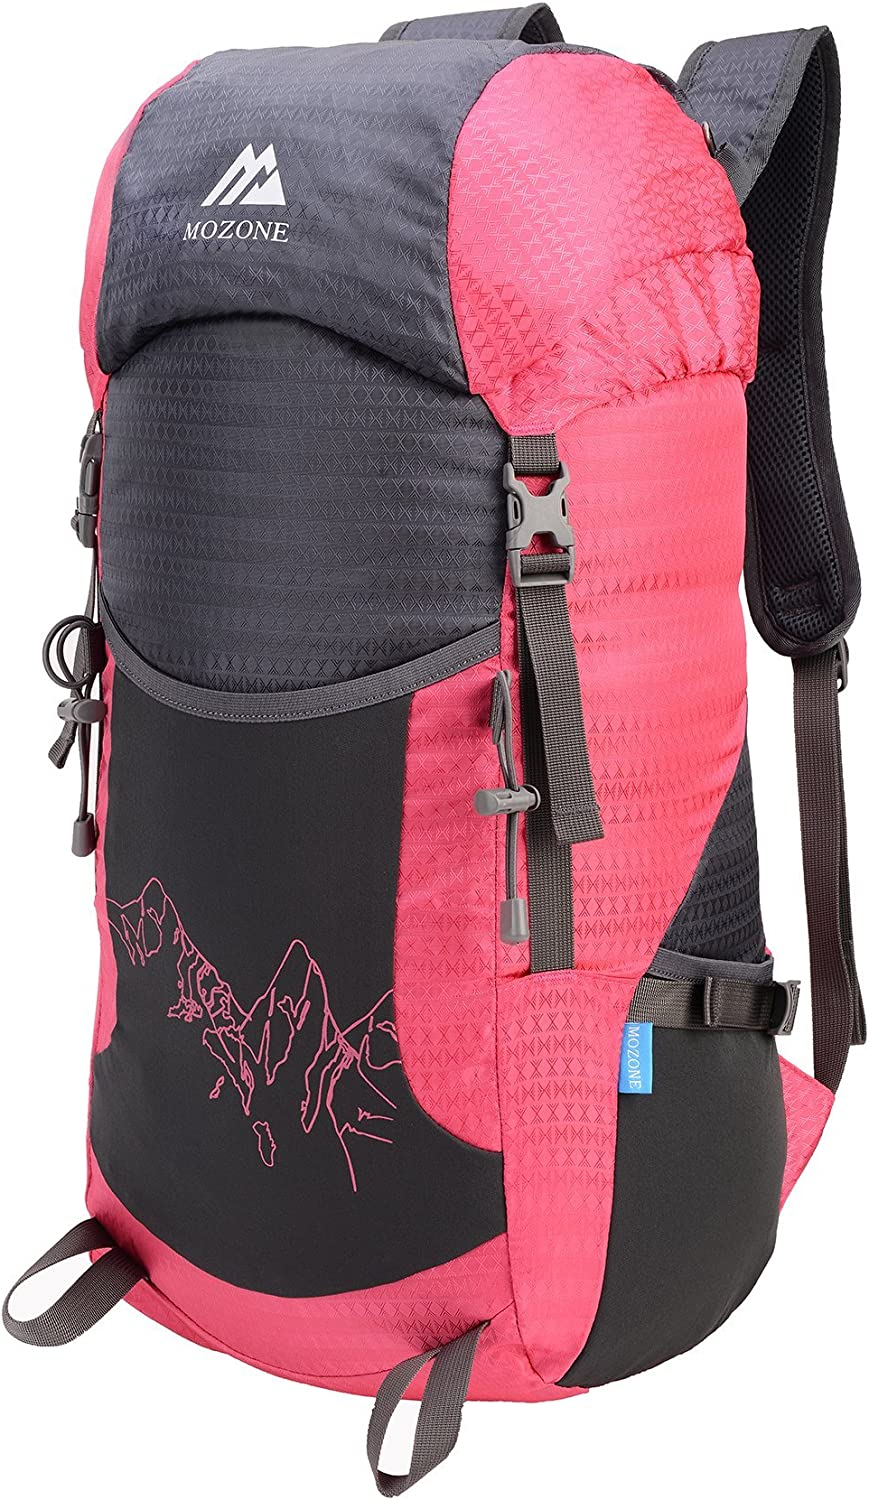 Mozone Large 45l Lightweight Rare foldable Packable Travel Spring new work one after another Backpack